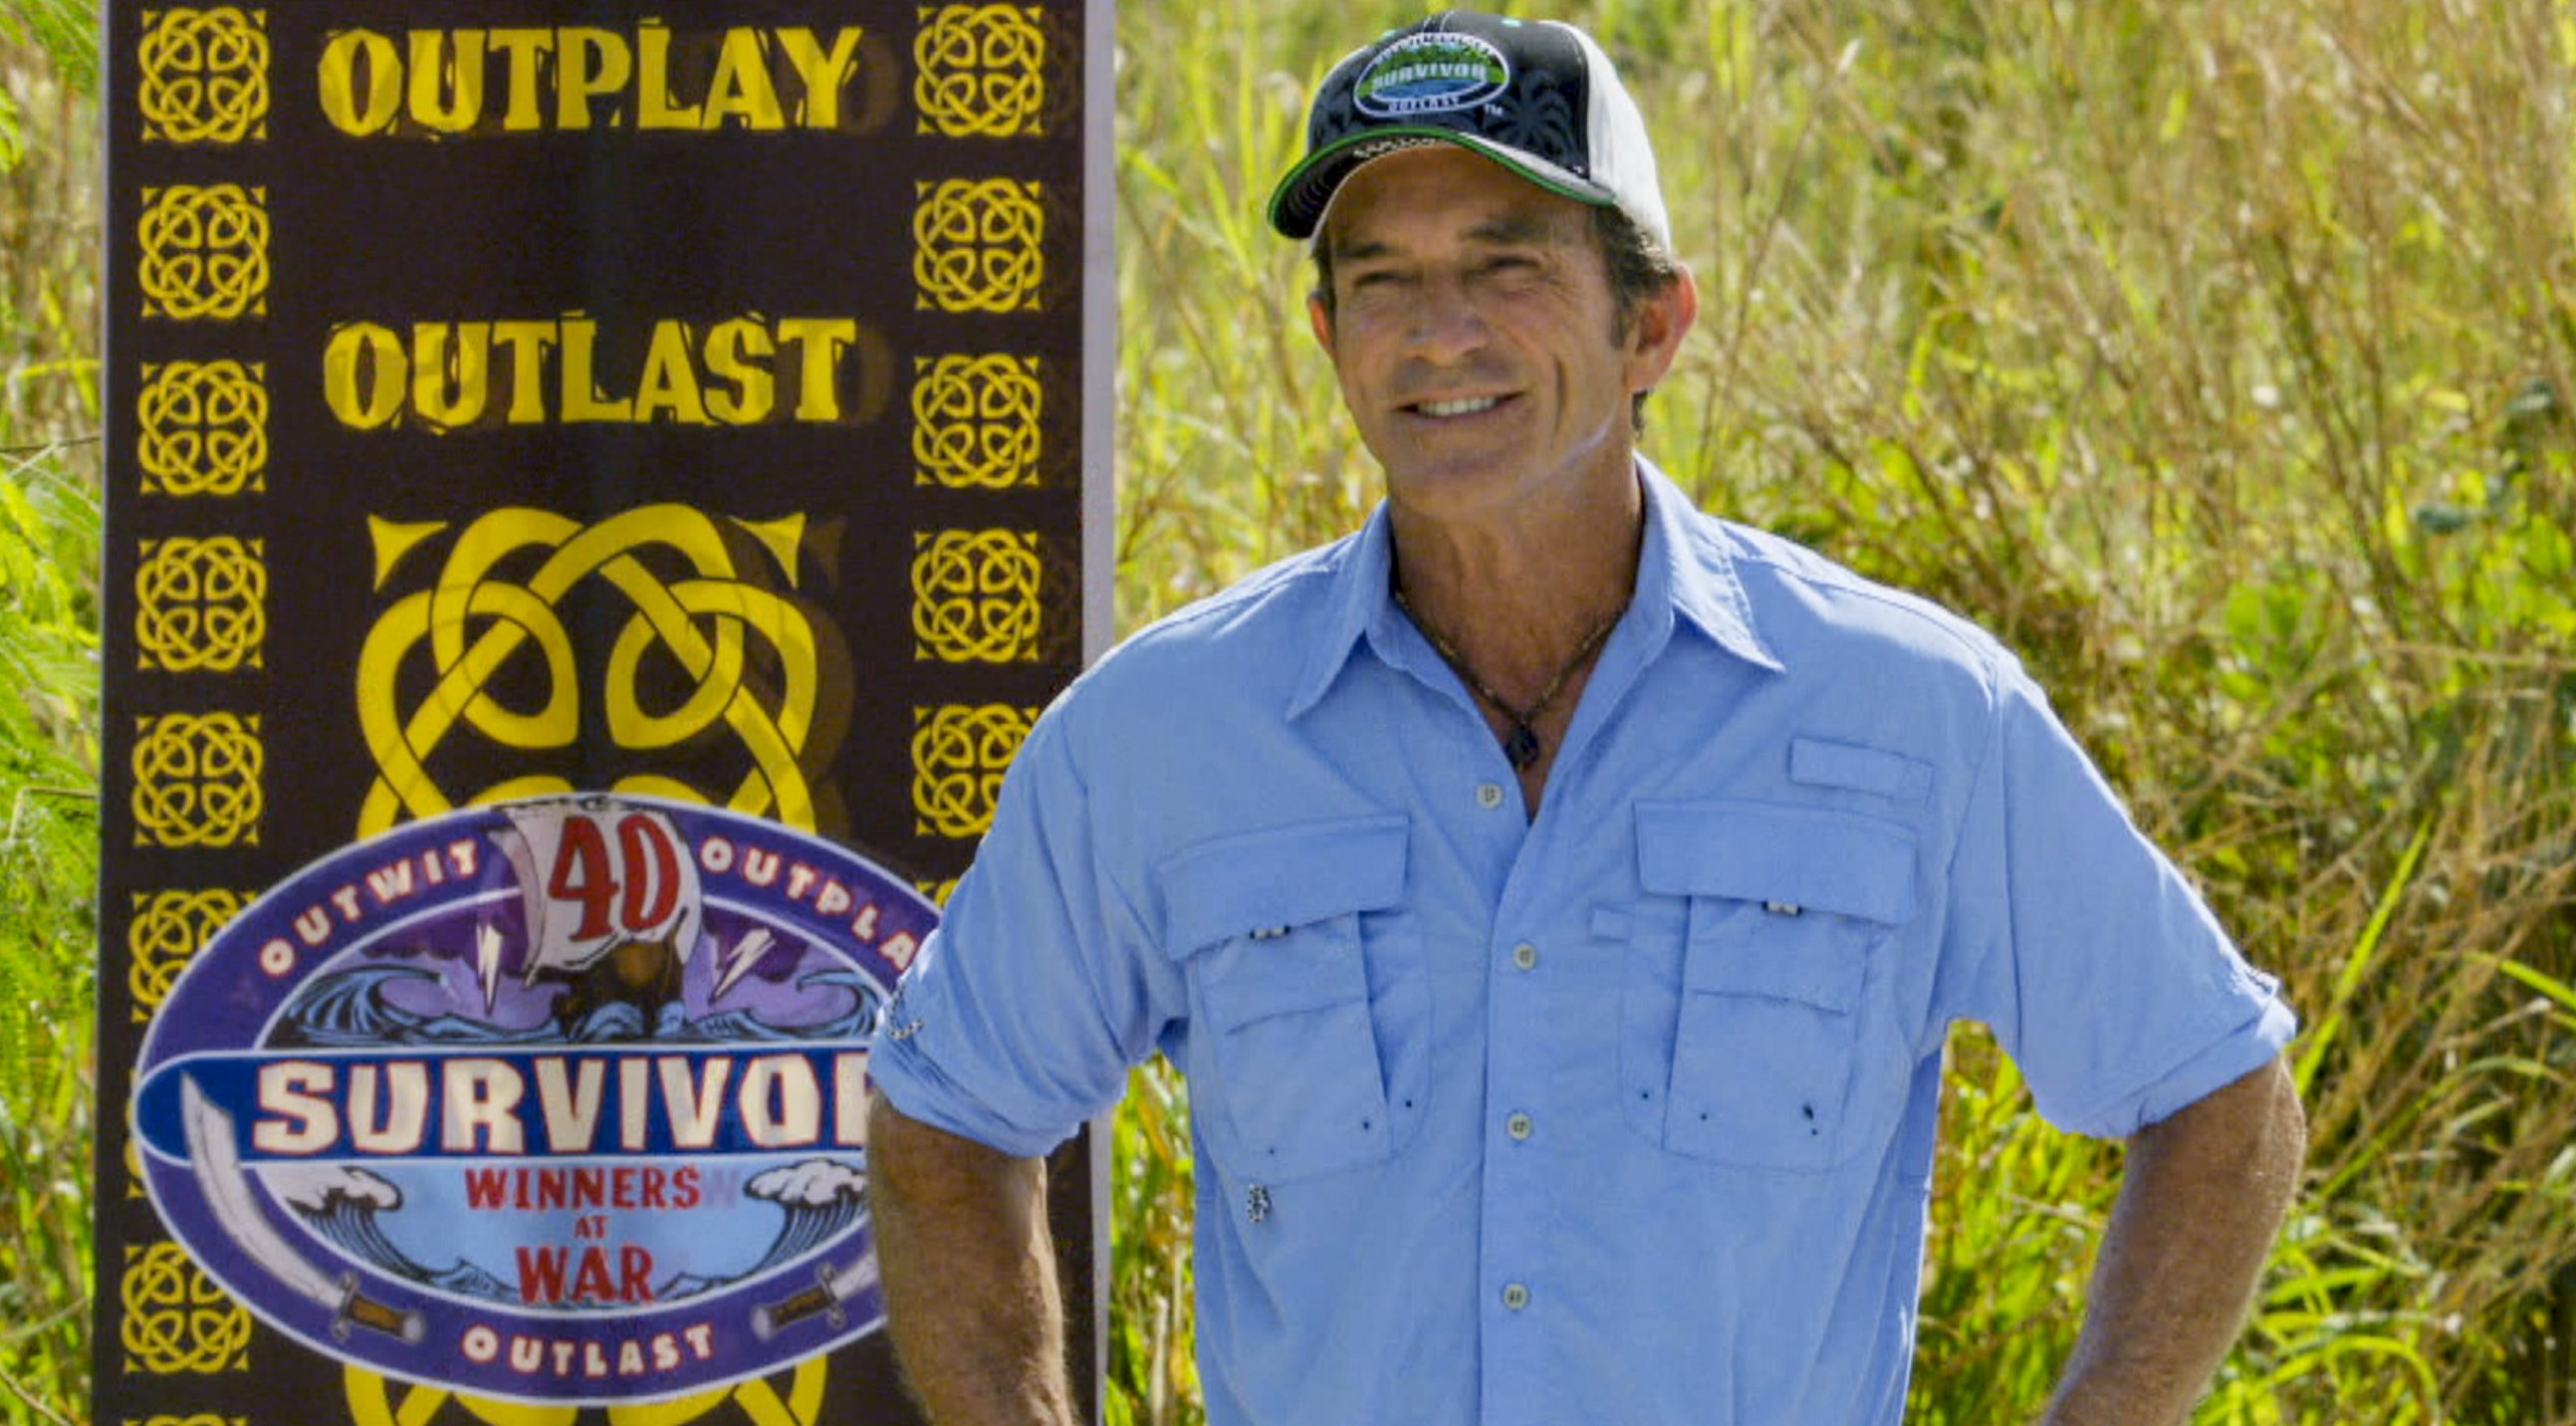 Survivor nackte manner tv show